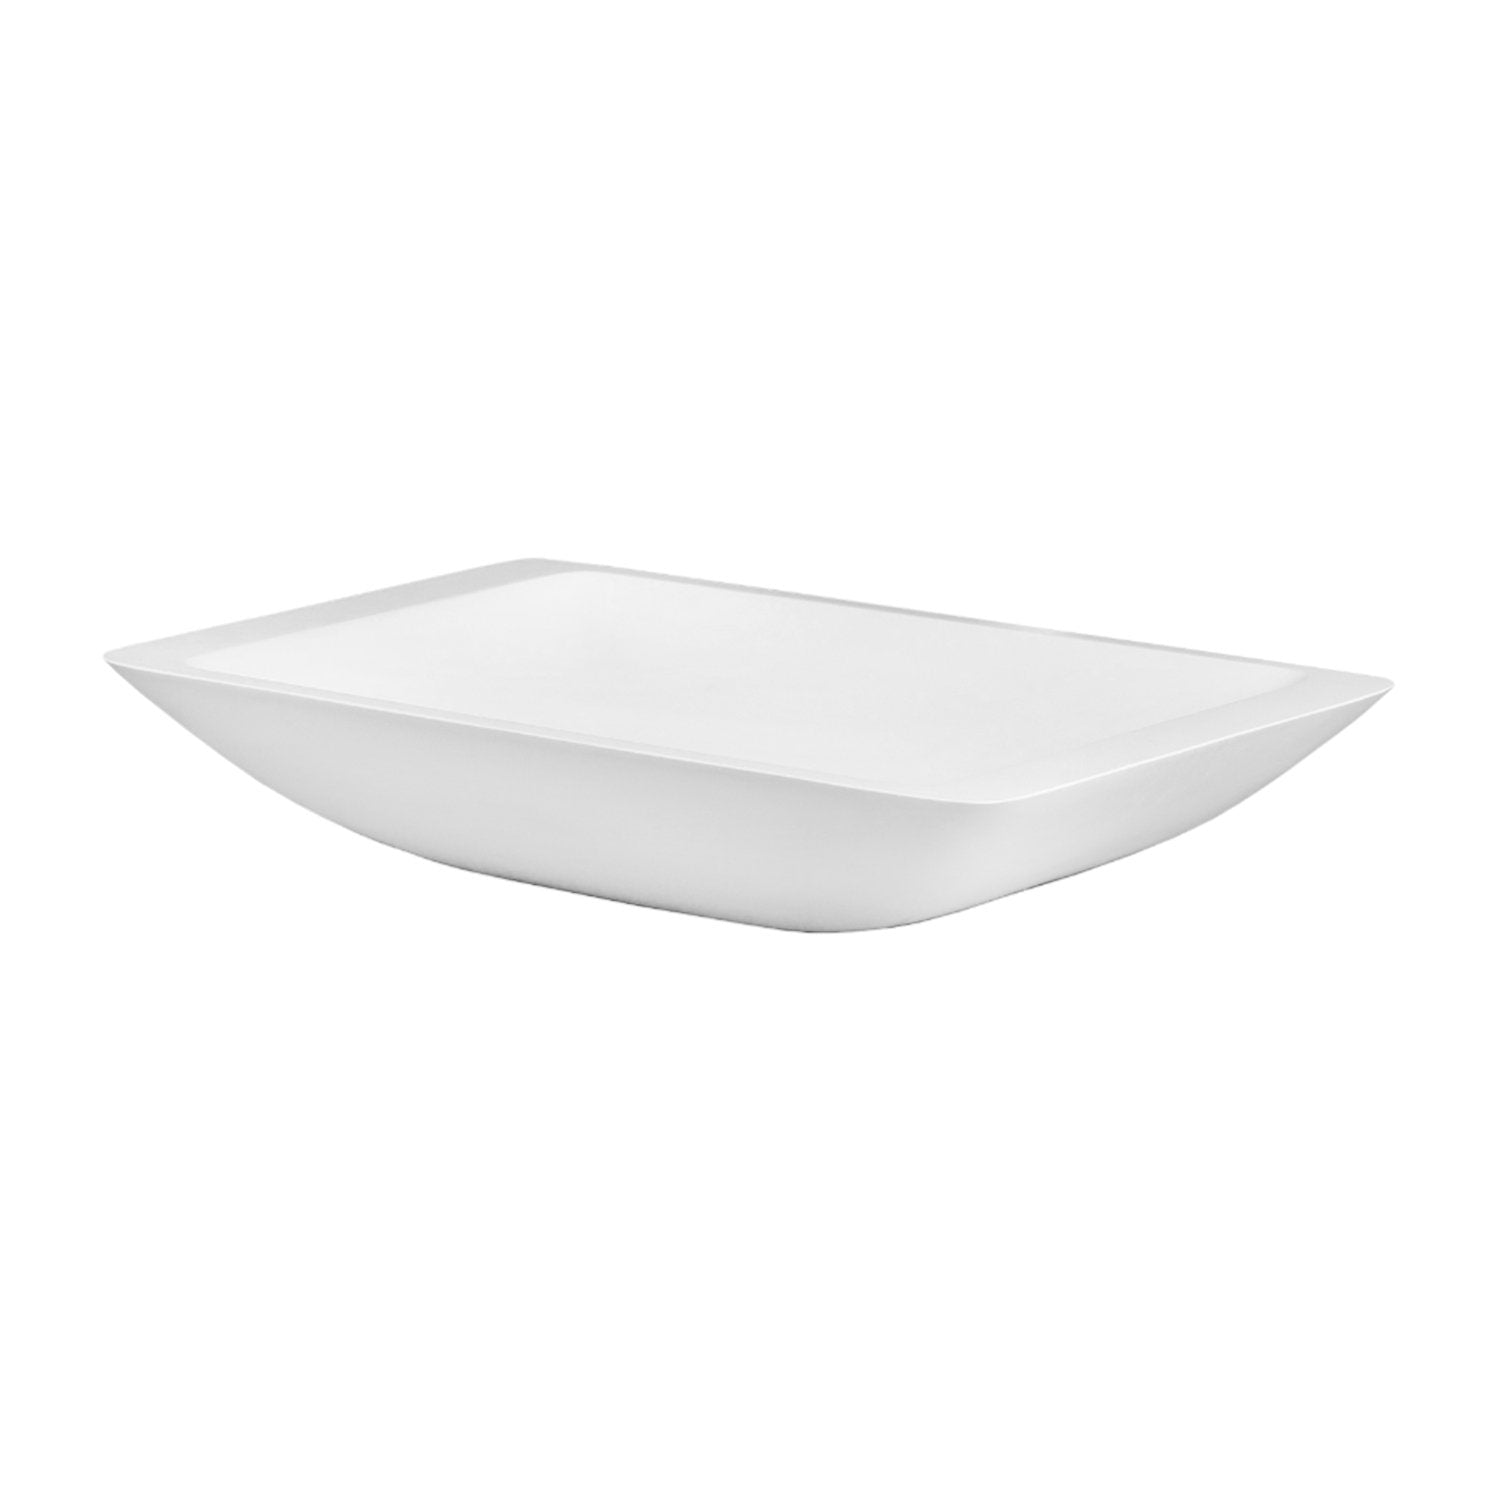 DAX Solid Surface Rectangle Single Bowl Bathroom Vessel Sink, White Matte Finish, 22-7/8 x 13-3/8 x 4 Inches (DAX-AB-1321)